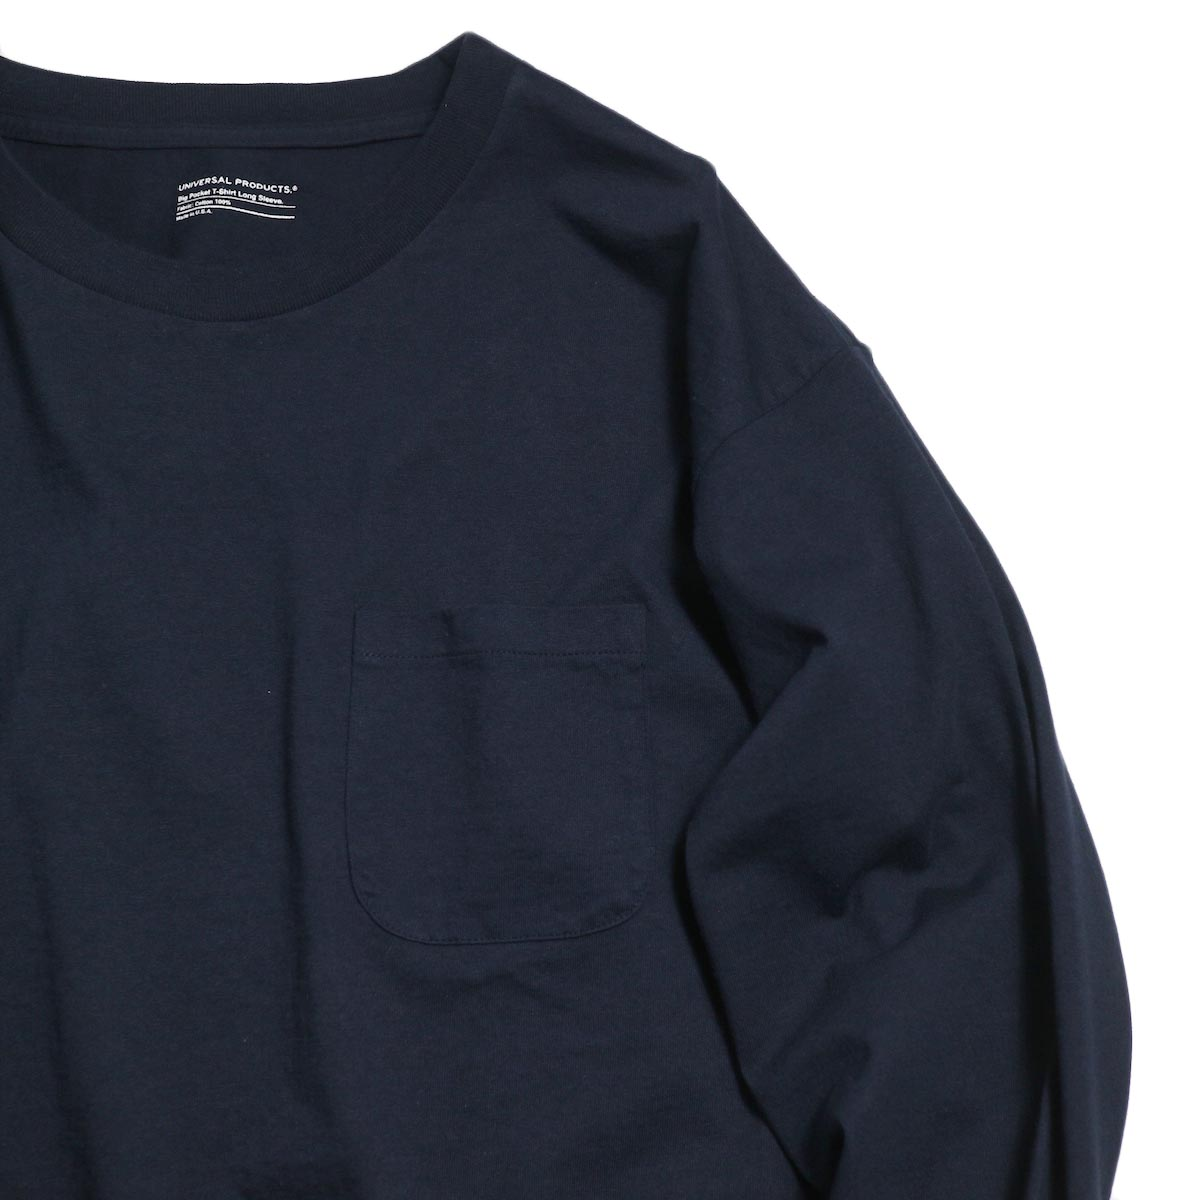 UNIVERSAL PRODUCTS / Heavy Weight L/S T-Shirt -Navy ボディ